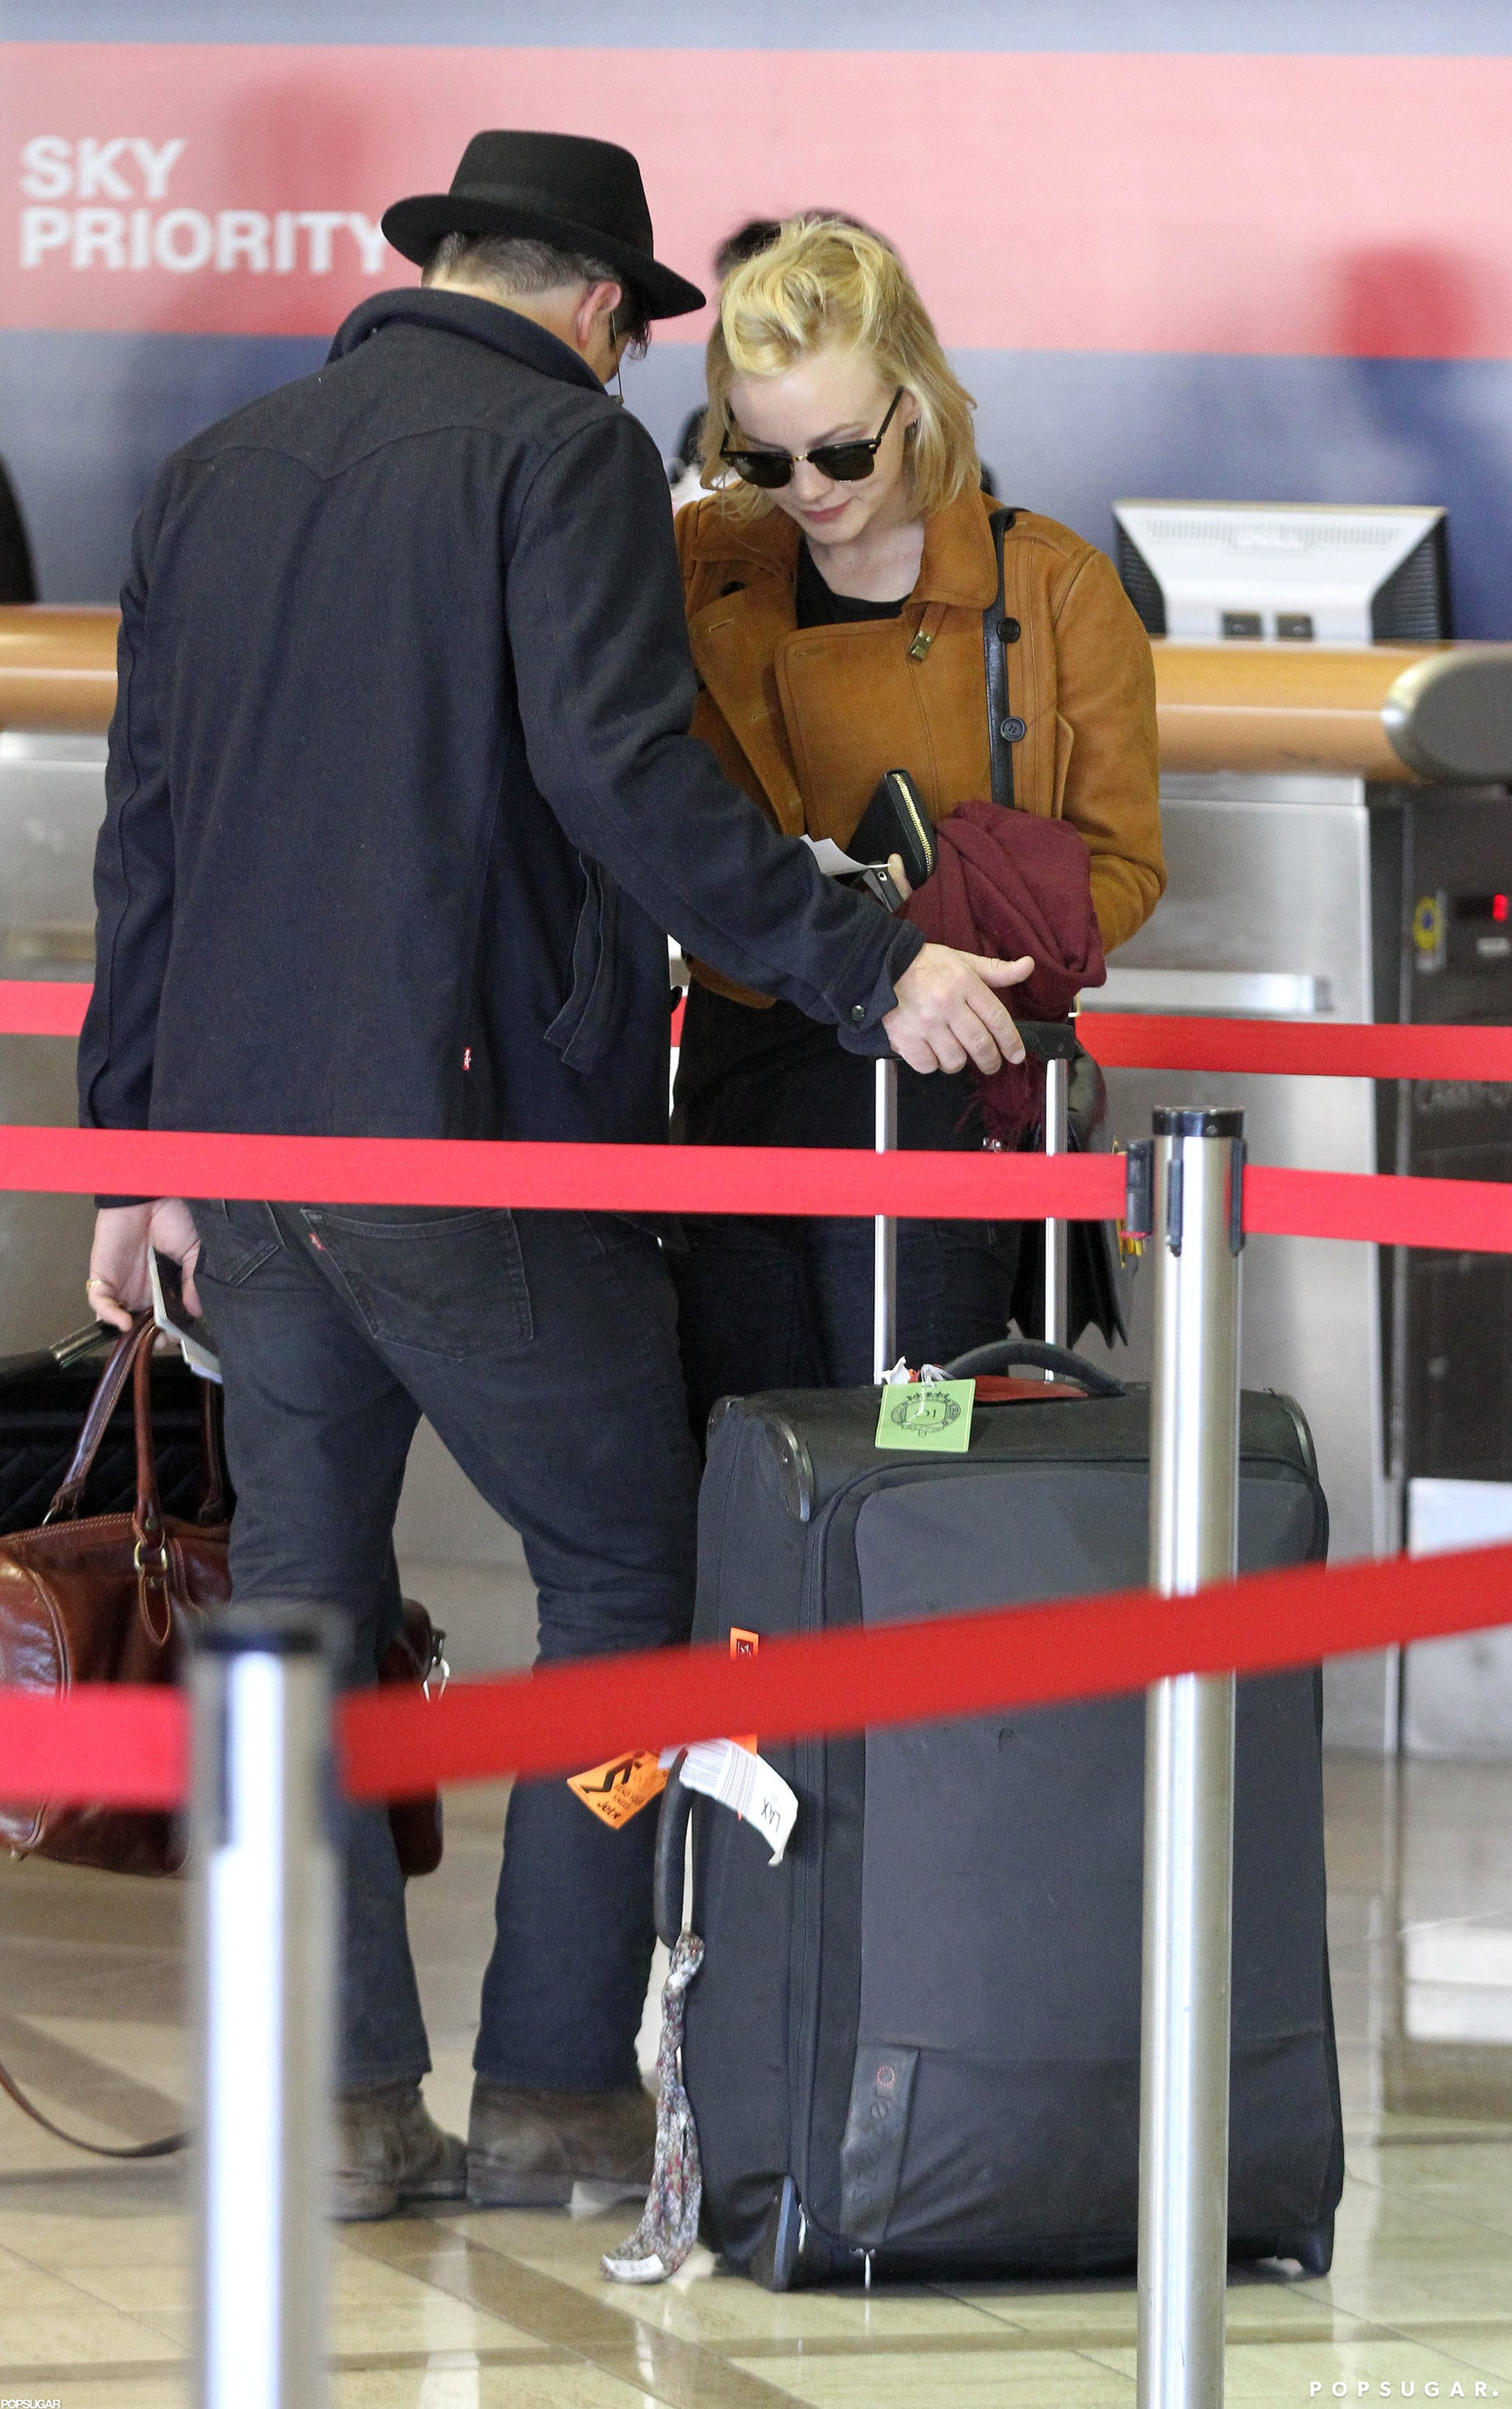 Carey Mulligan and Marcus Mumford chatted while waiting.